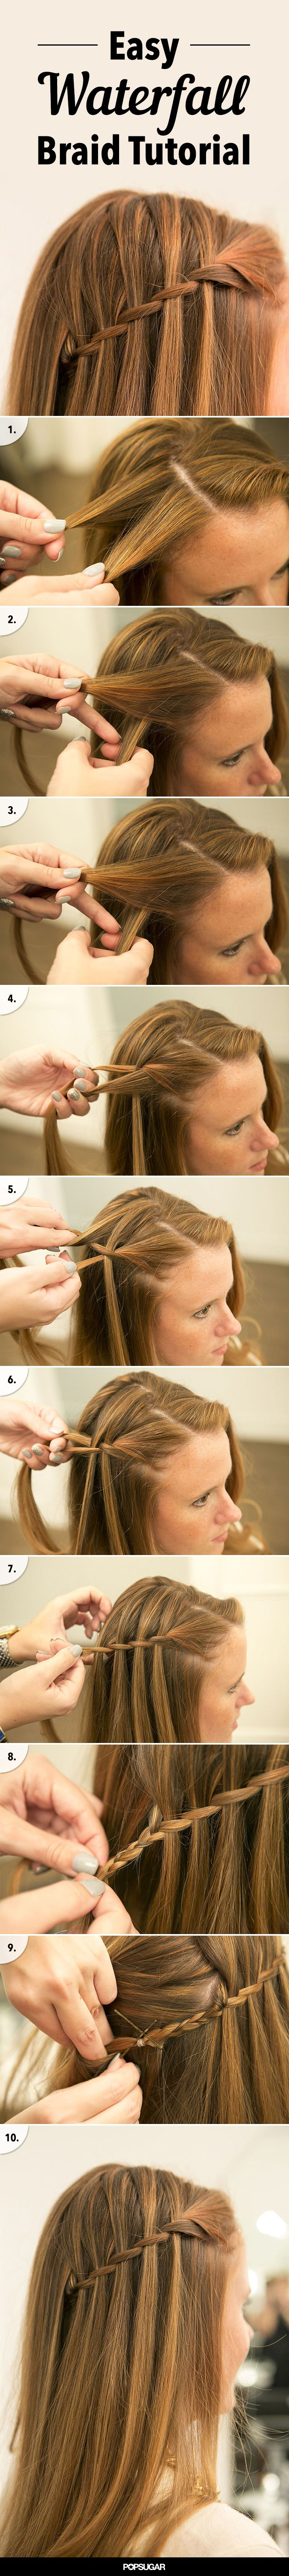 Learn How to DIY the Waterfall Braid ce and For All